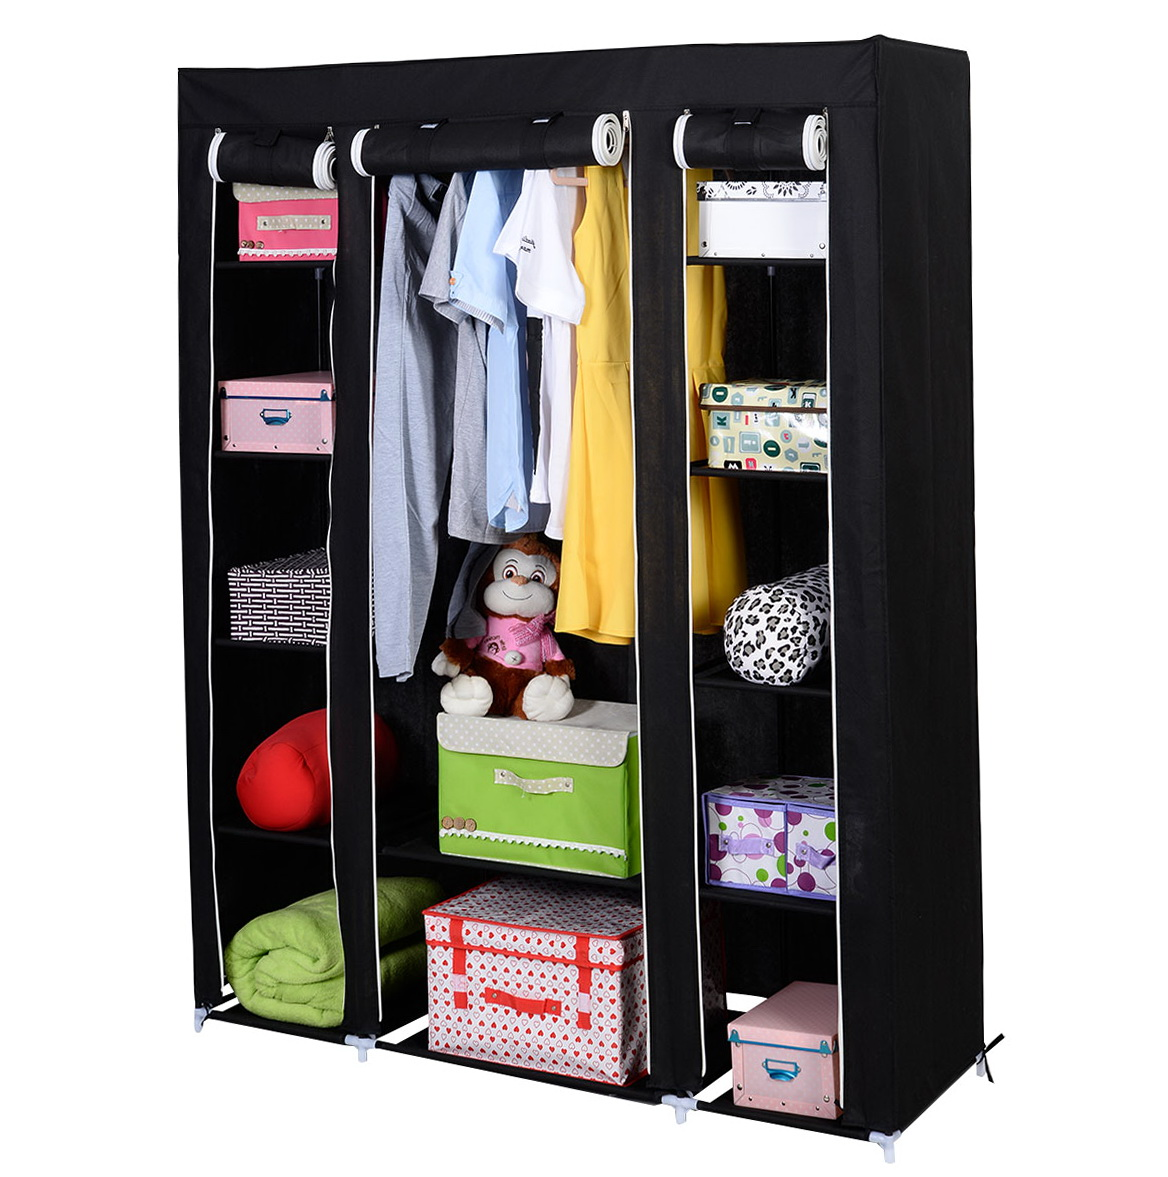 Portable Closet Storage Organizer Wardrobe Clothes Rack With Shelves